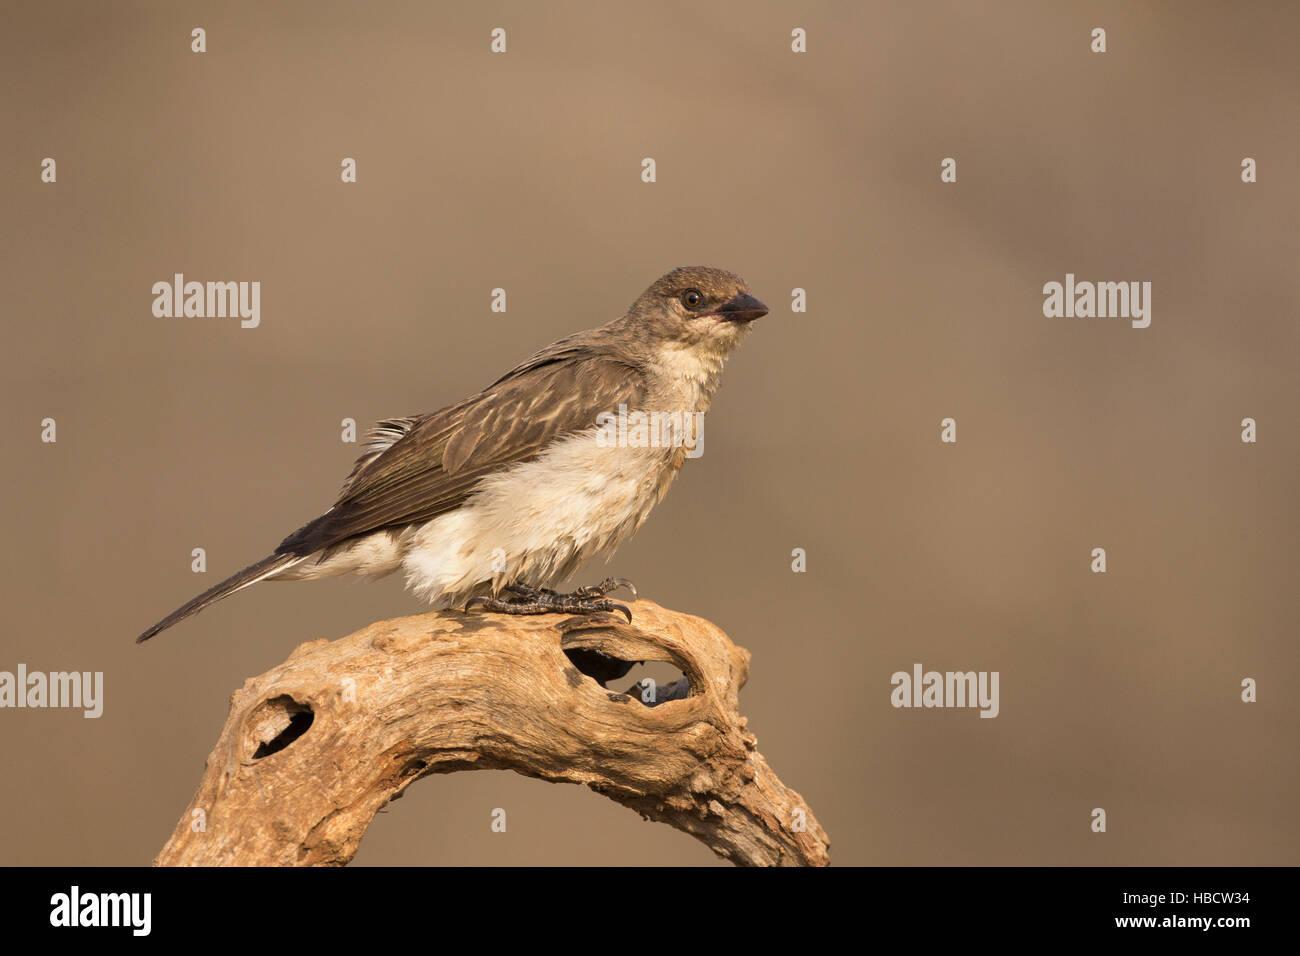 Greater honeyguide (Indicator indicator), Zimanga private game reserve, South Africa - Stock Image